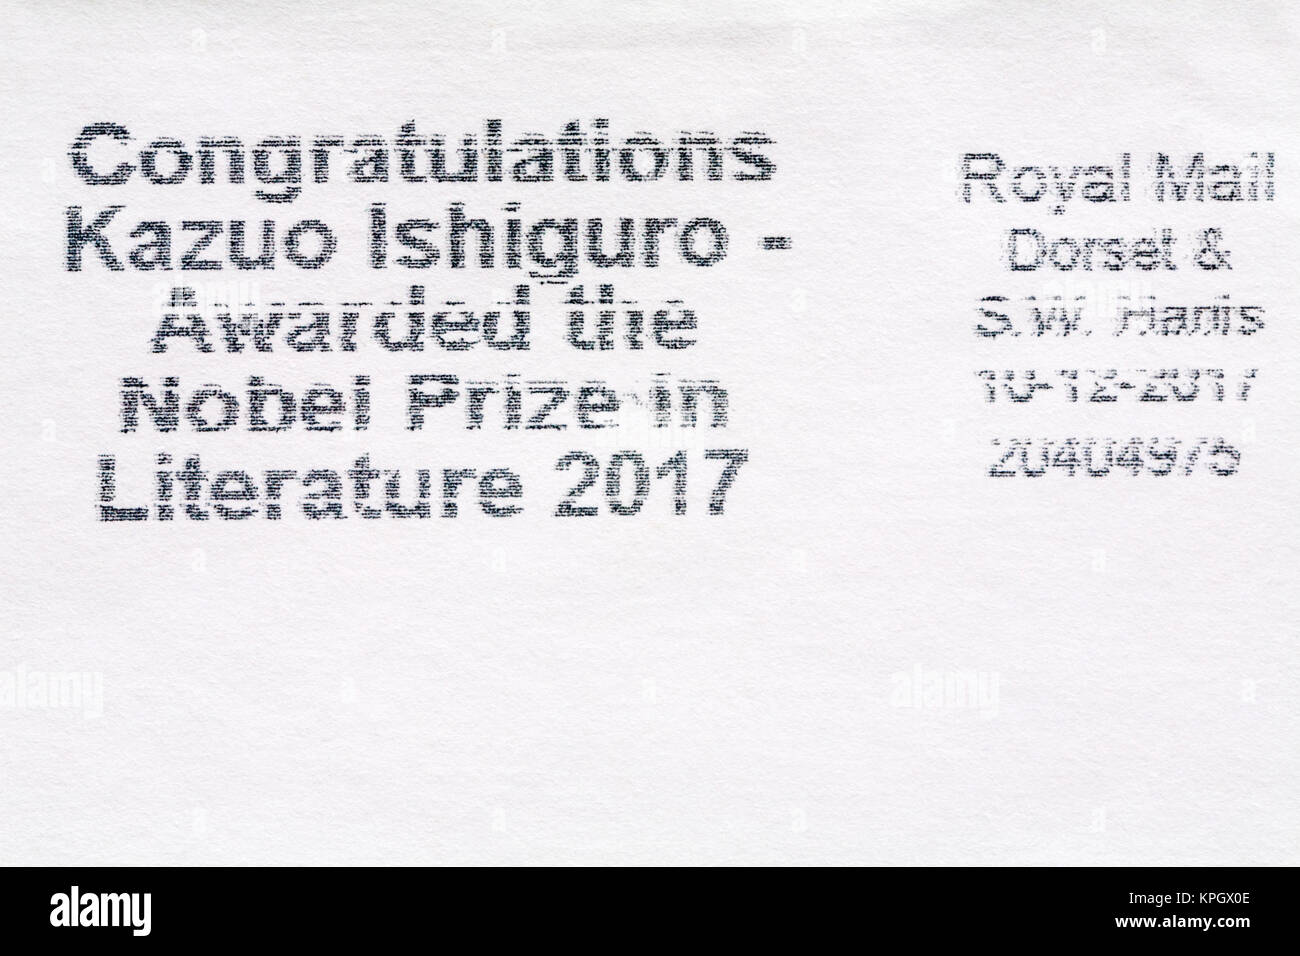 Congratulations Kazuo Ishiguro - awarded the Nobel Prize in Literature 2017 - information stamped on envelope - Stock Image